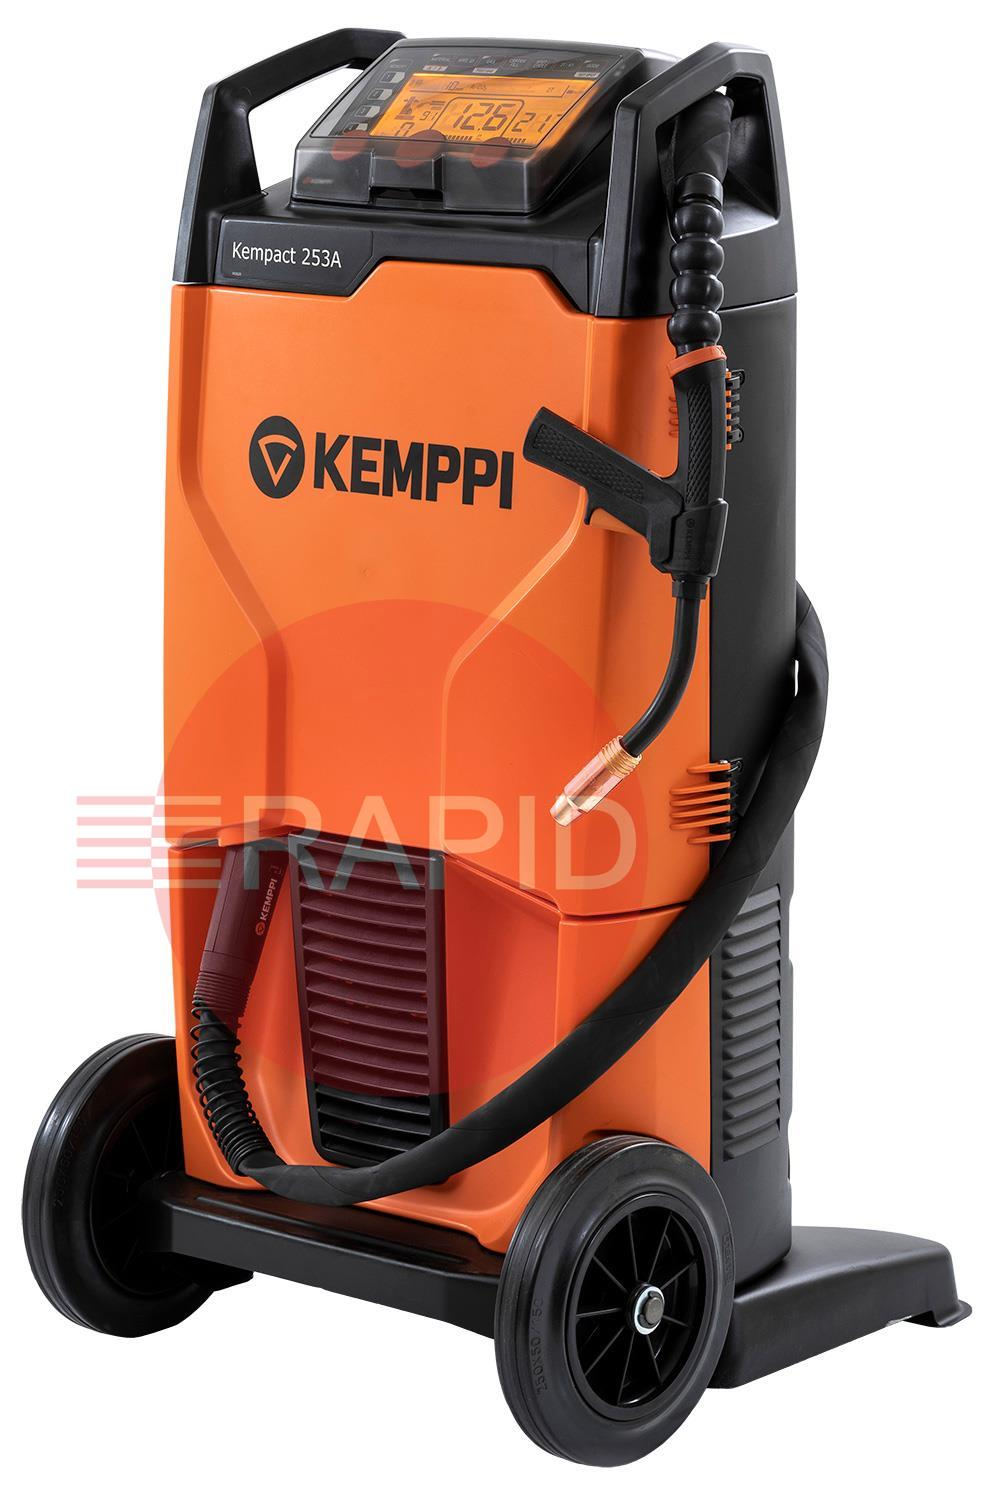 KempactRA-253A  Kemppi Kempact RA 253A, 250A 3 phase 400v Mig Welder, with FE32 Torch